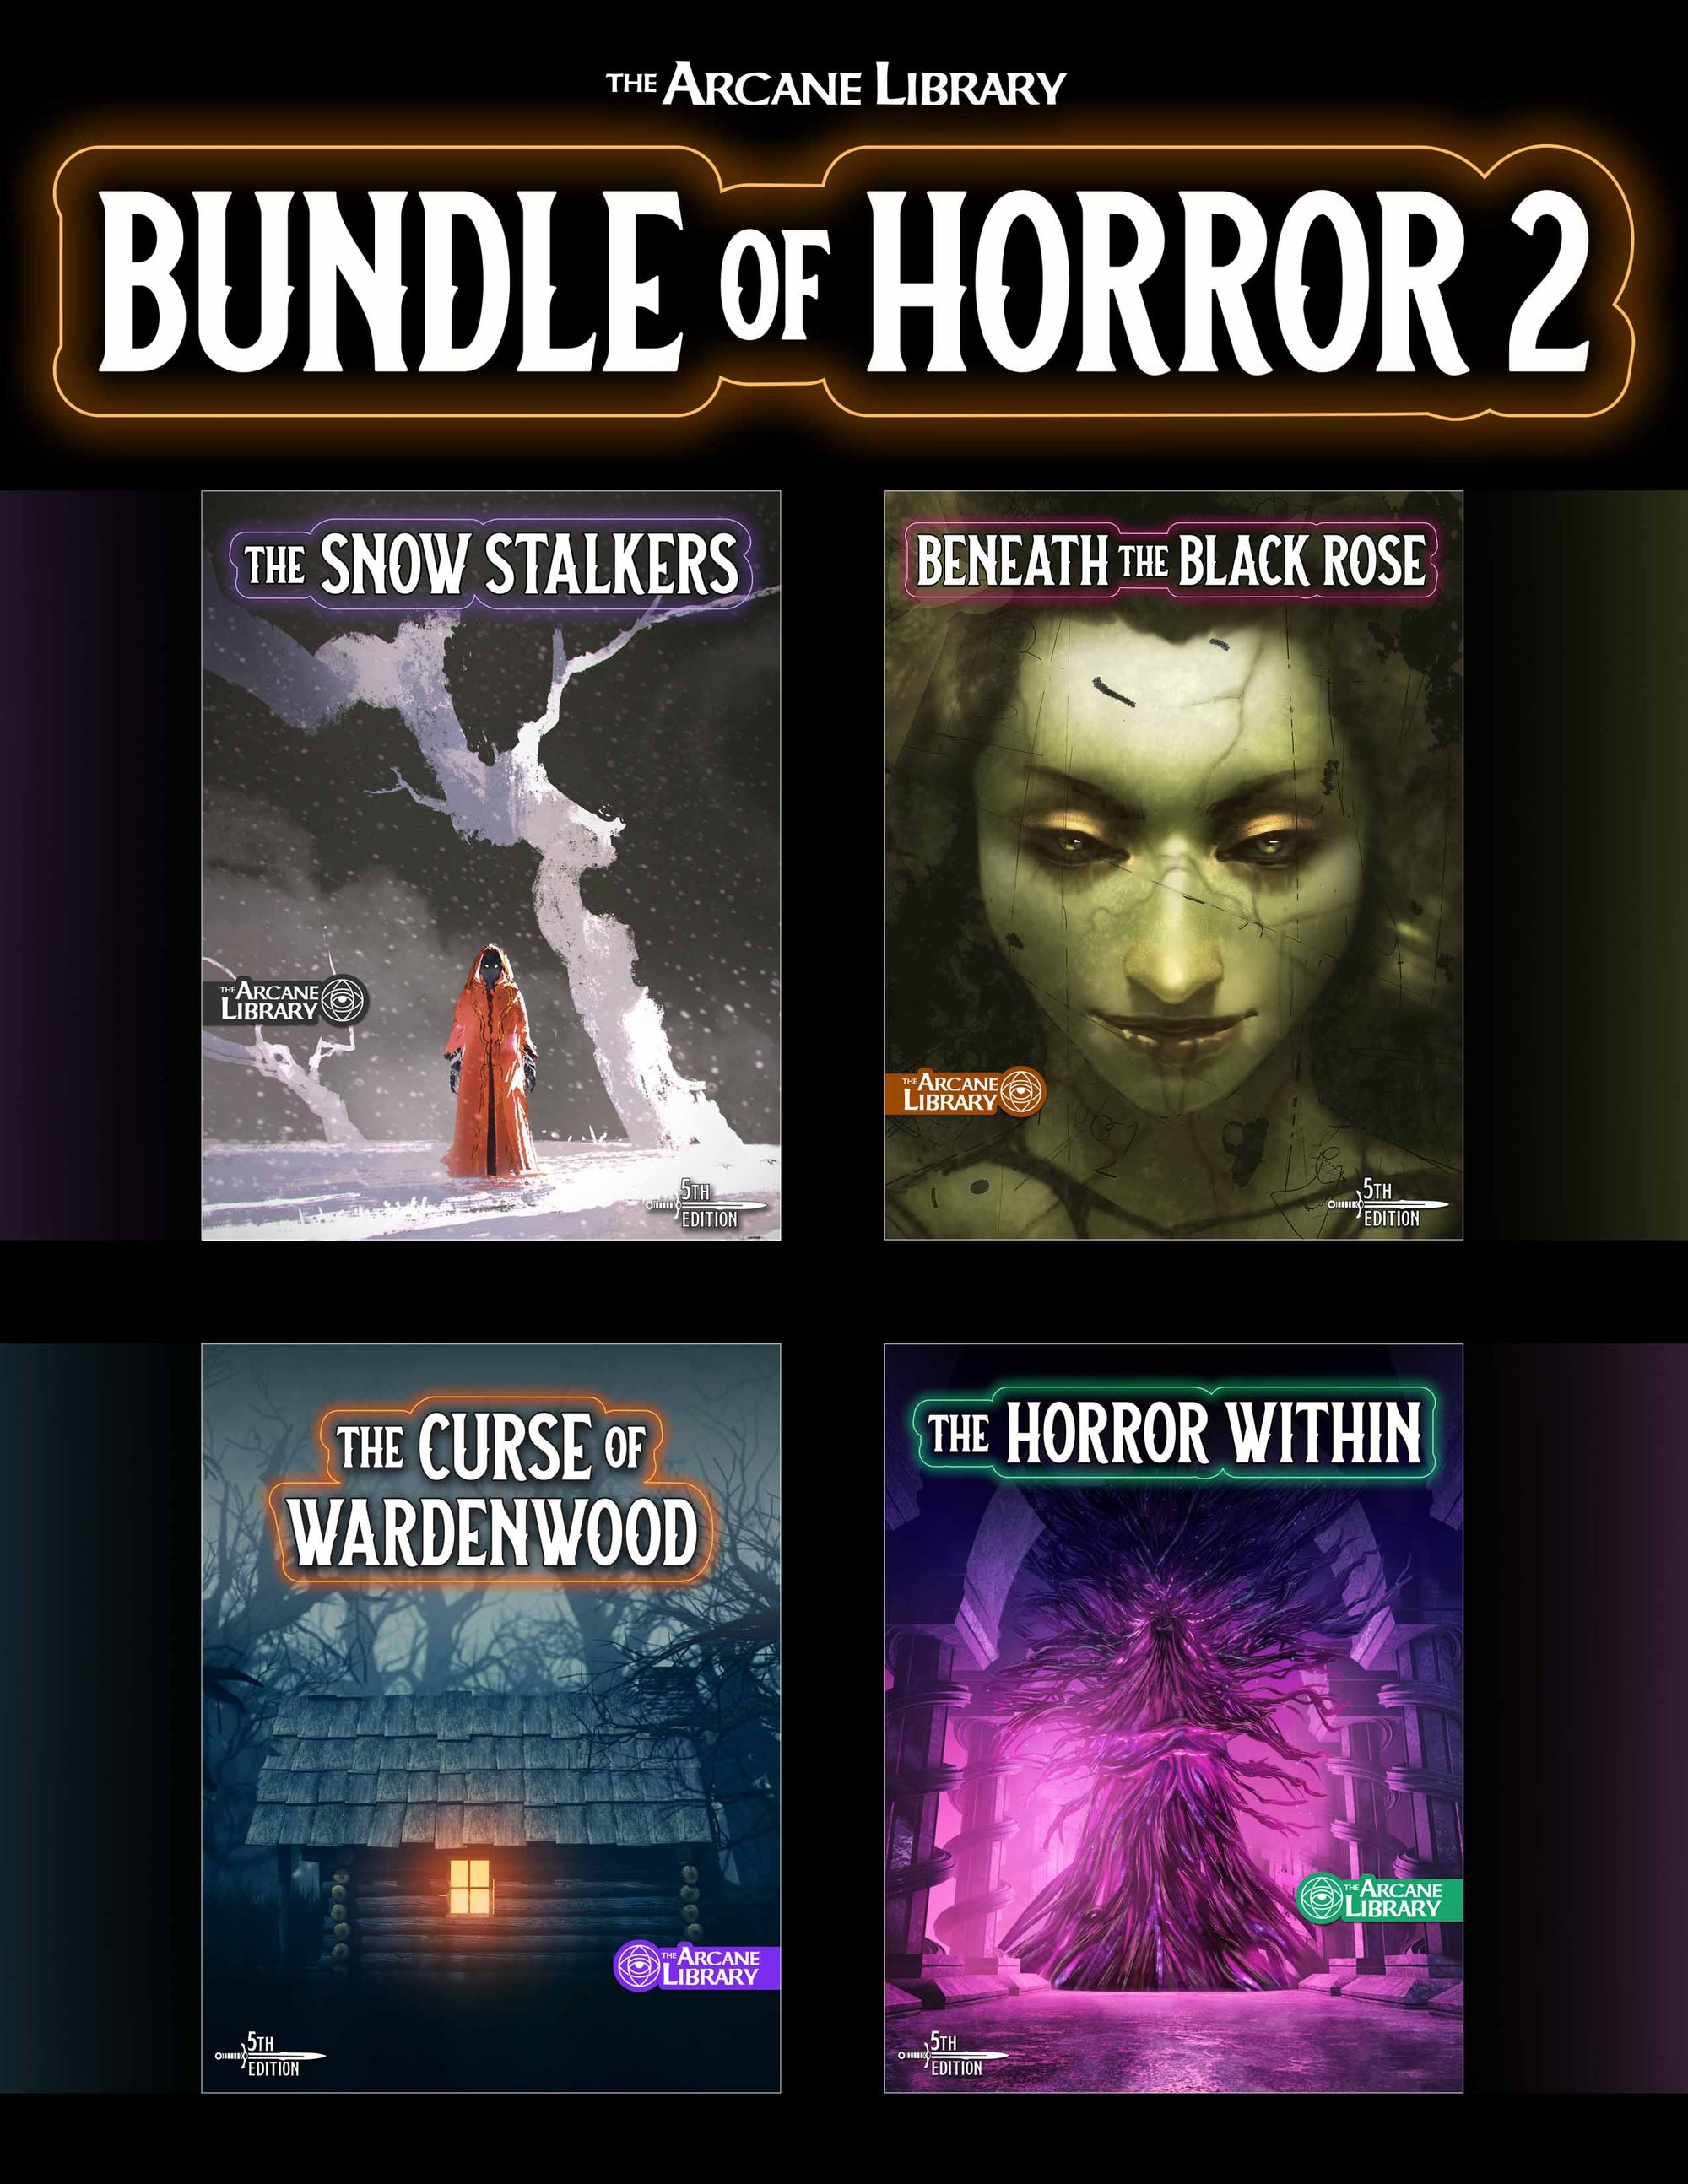 Bundle of Horror 2, D&D horror one shot, best D&D adventure